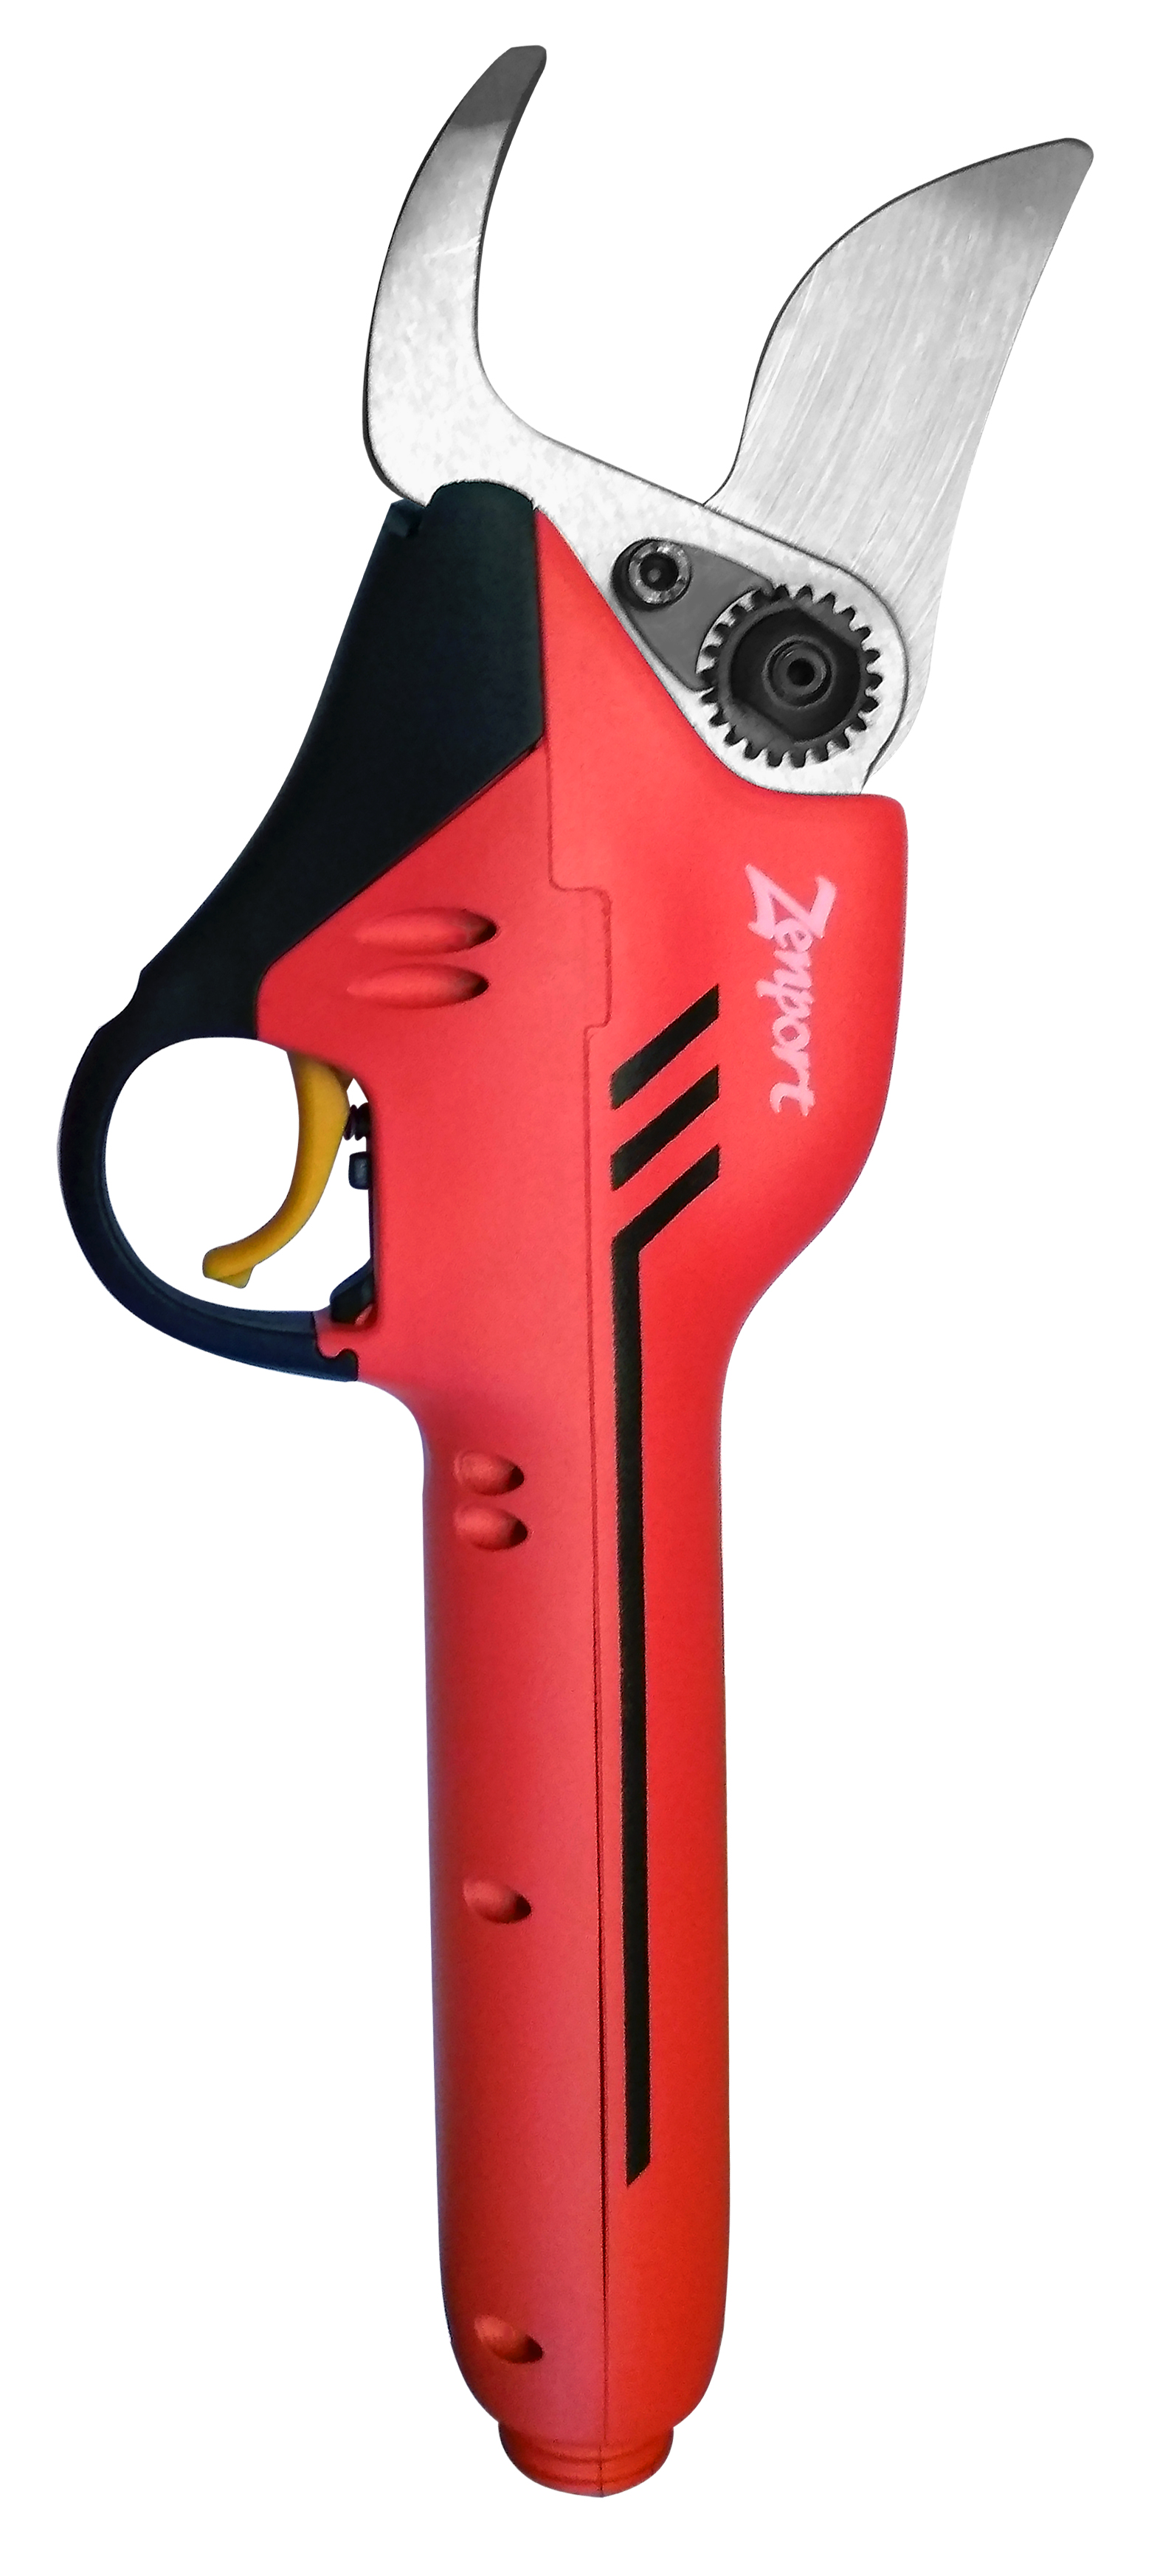 Zenport ePruner EP4-868 Large Battery Powered Electric Pruner, 12-Hour, 1.5 Inch Cut, 6-PIN